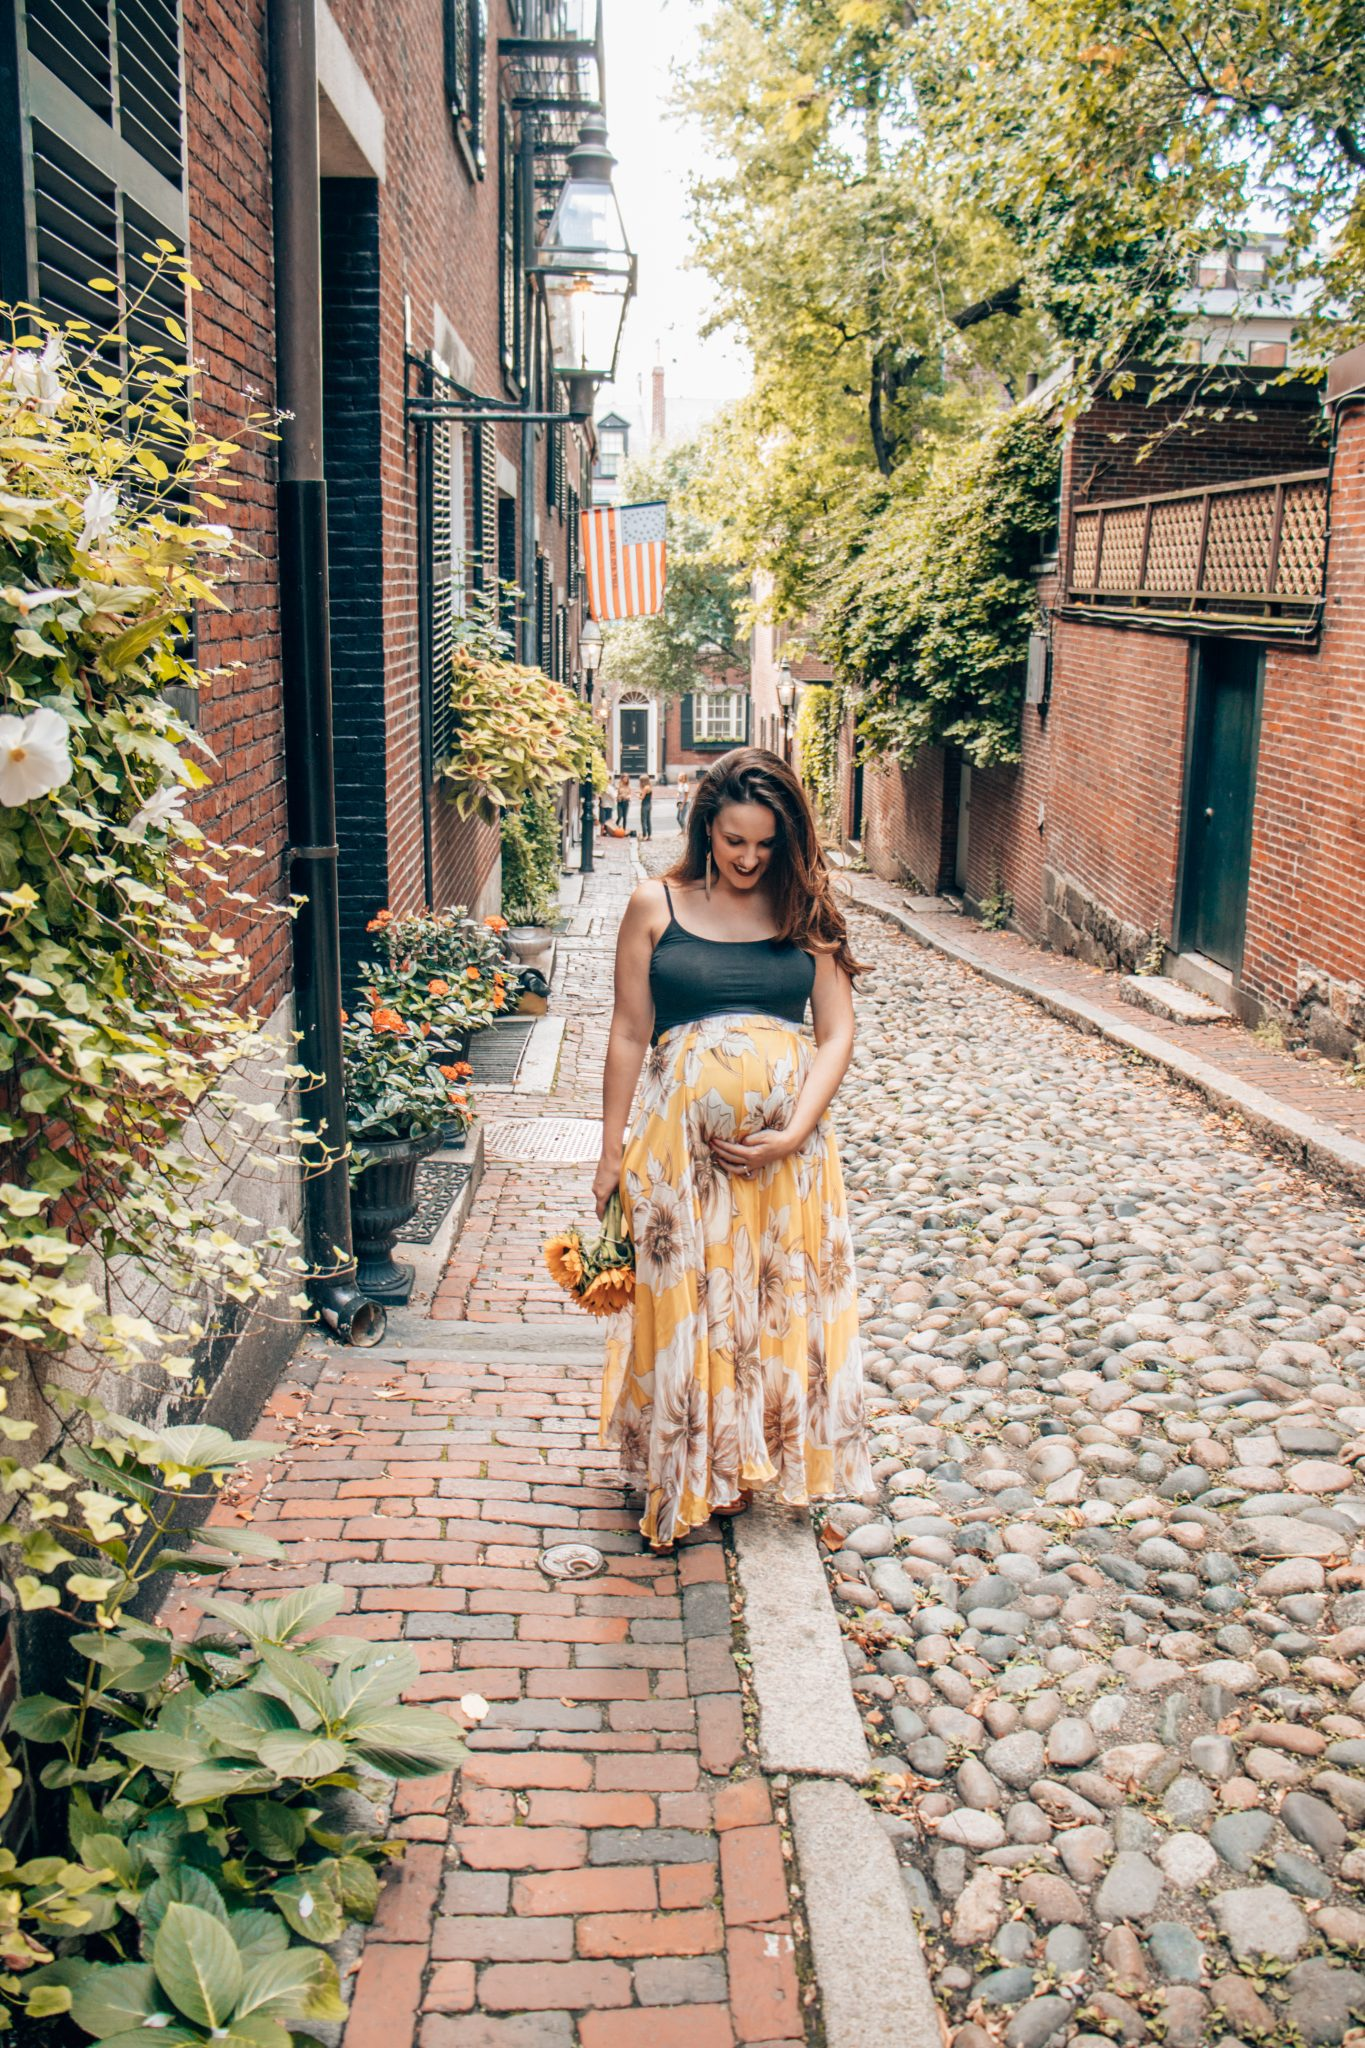 Tips to travel during pregnancy